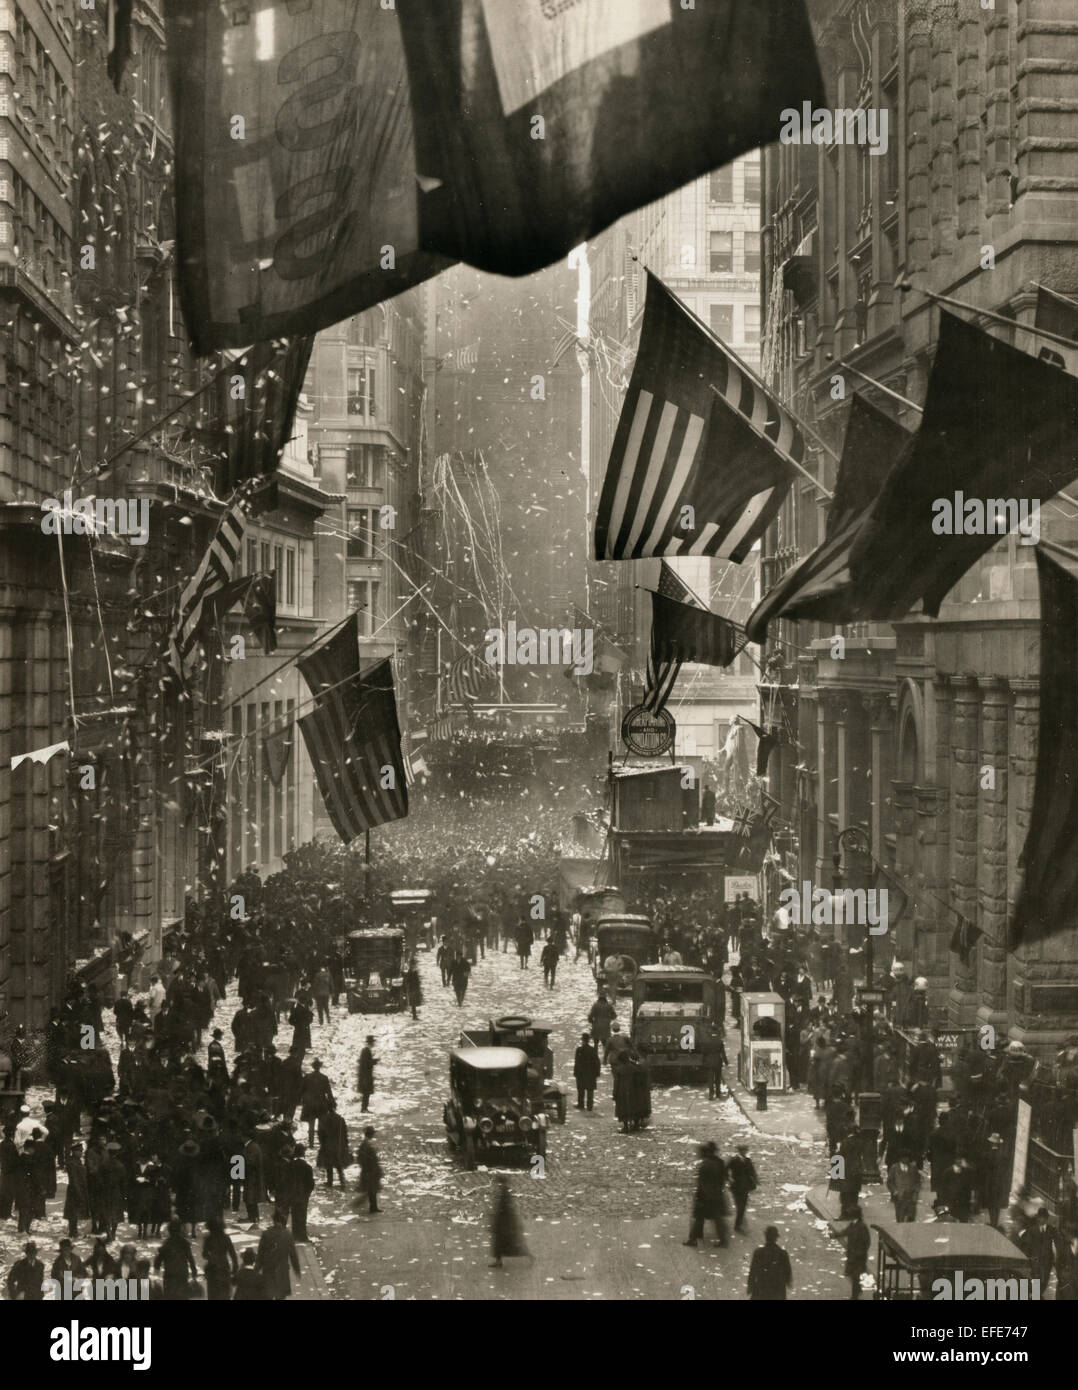 Germany Surrenders - celebrations on Wall Street with confetti, American flags, and crowds of people. November 1918 - Stock Image